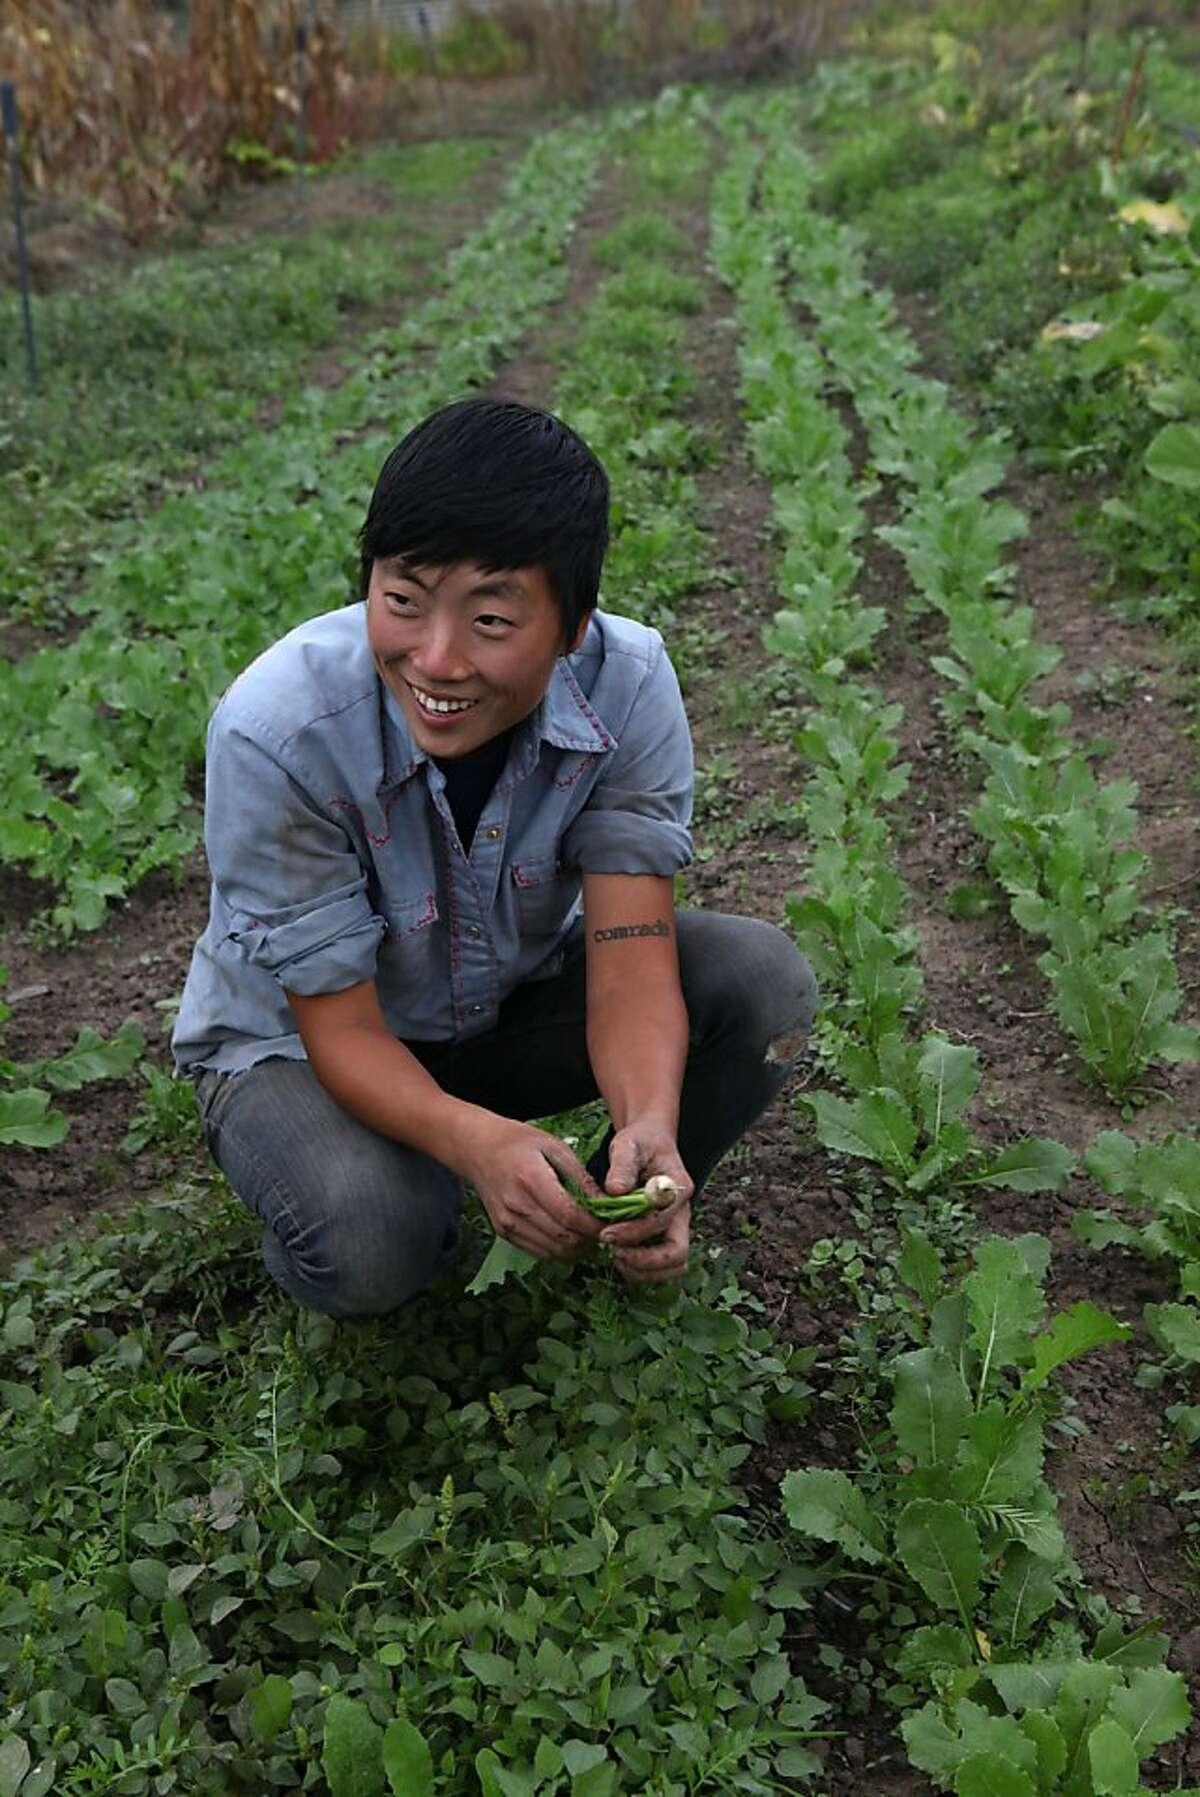 Kristen Leach showing her rows of japanese turnips which she grows at Sunol Agricultural Park in Sunol, Calif., on Wednesday, October 31, 2012. She cultivates heritage crops for korean restaurant Namu Gaji.